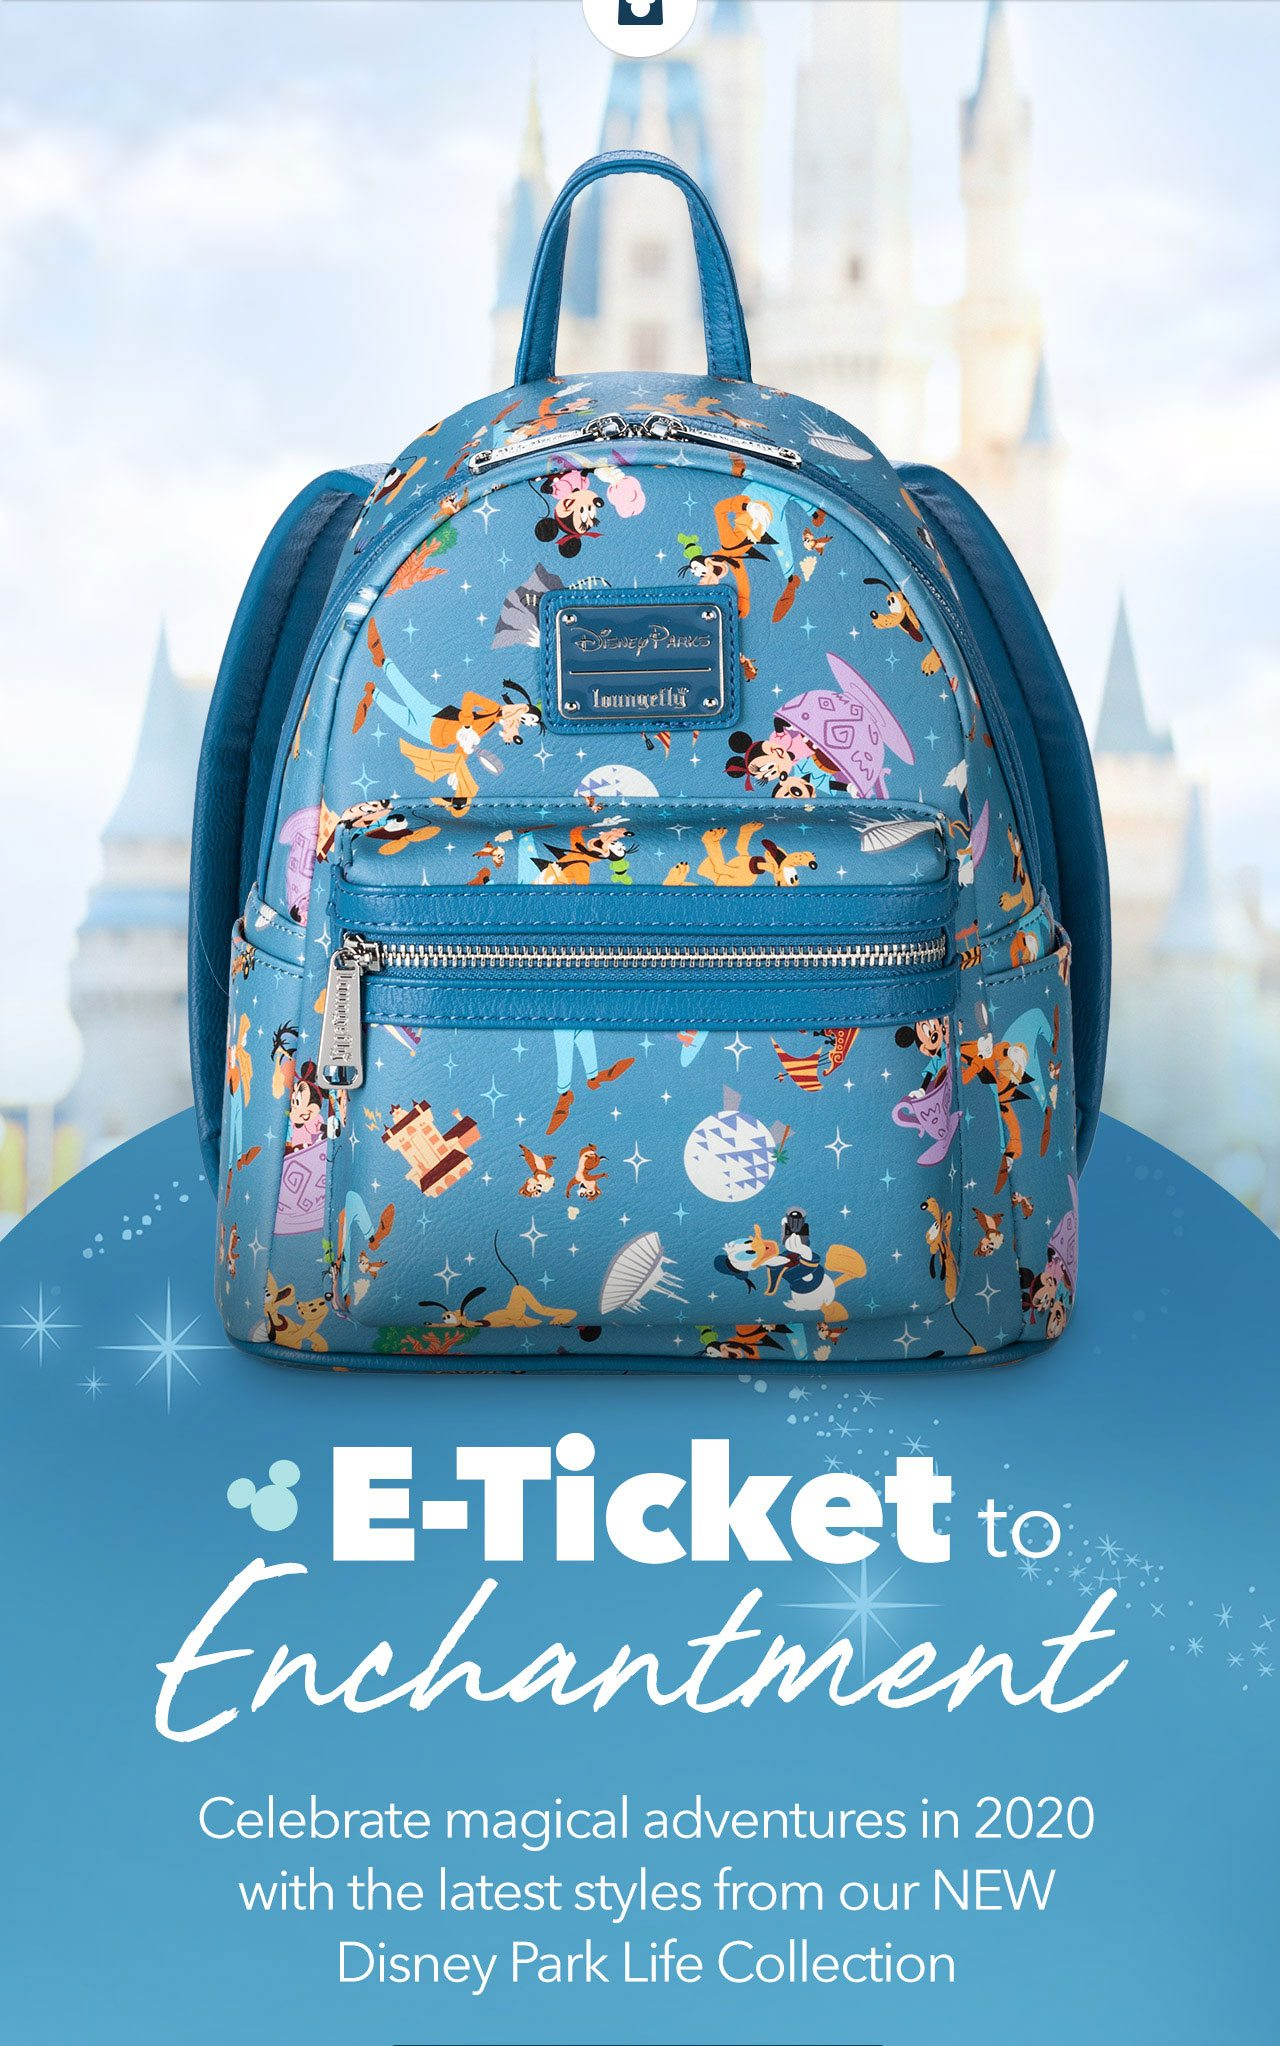 E-Ticket to Enchantment | Celebrate magical adventures in 2020 with the latest styles from our NEW Disney Park Life Collection.